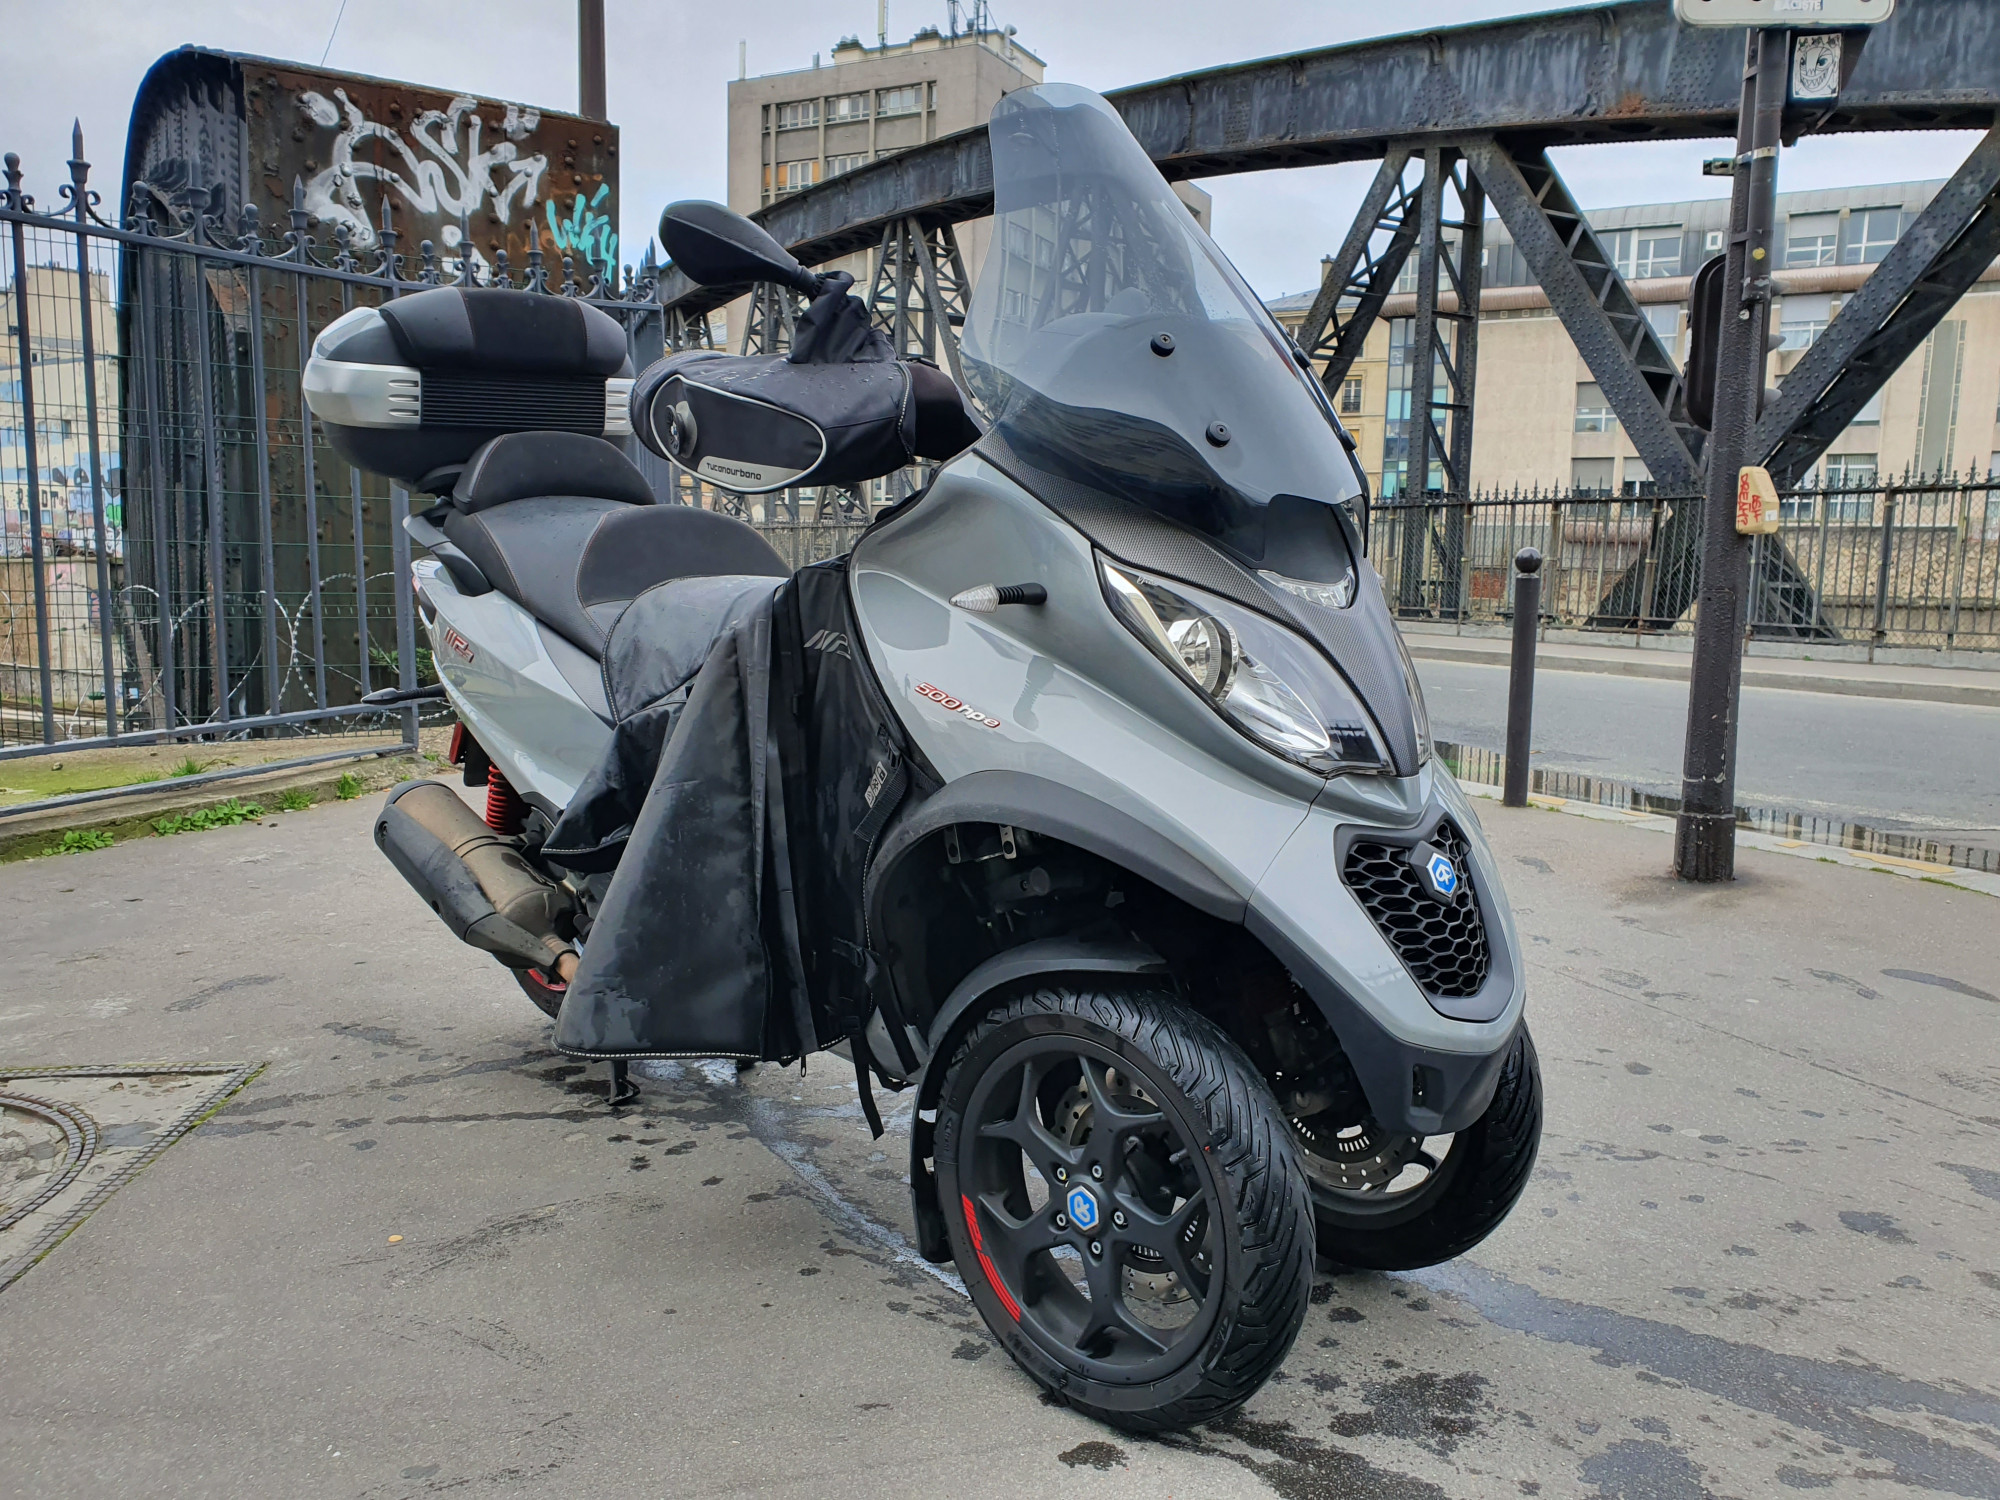 PIAGGIO 500 MP3 500 HPE BUSINESS ABS/ASR